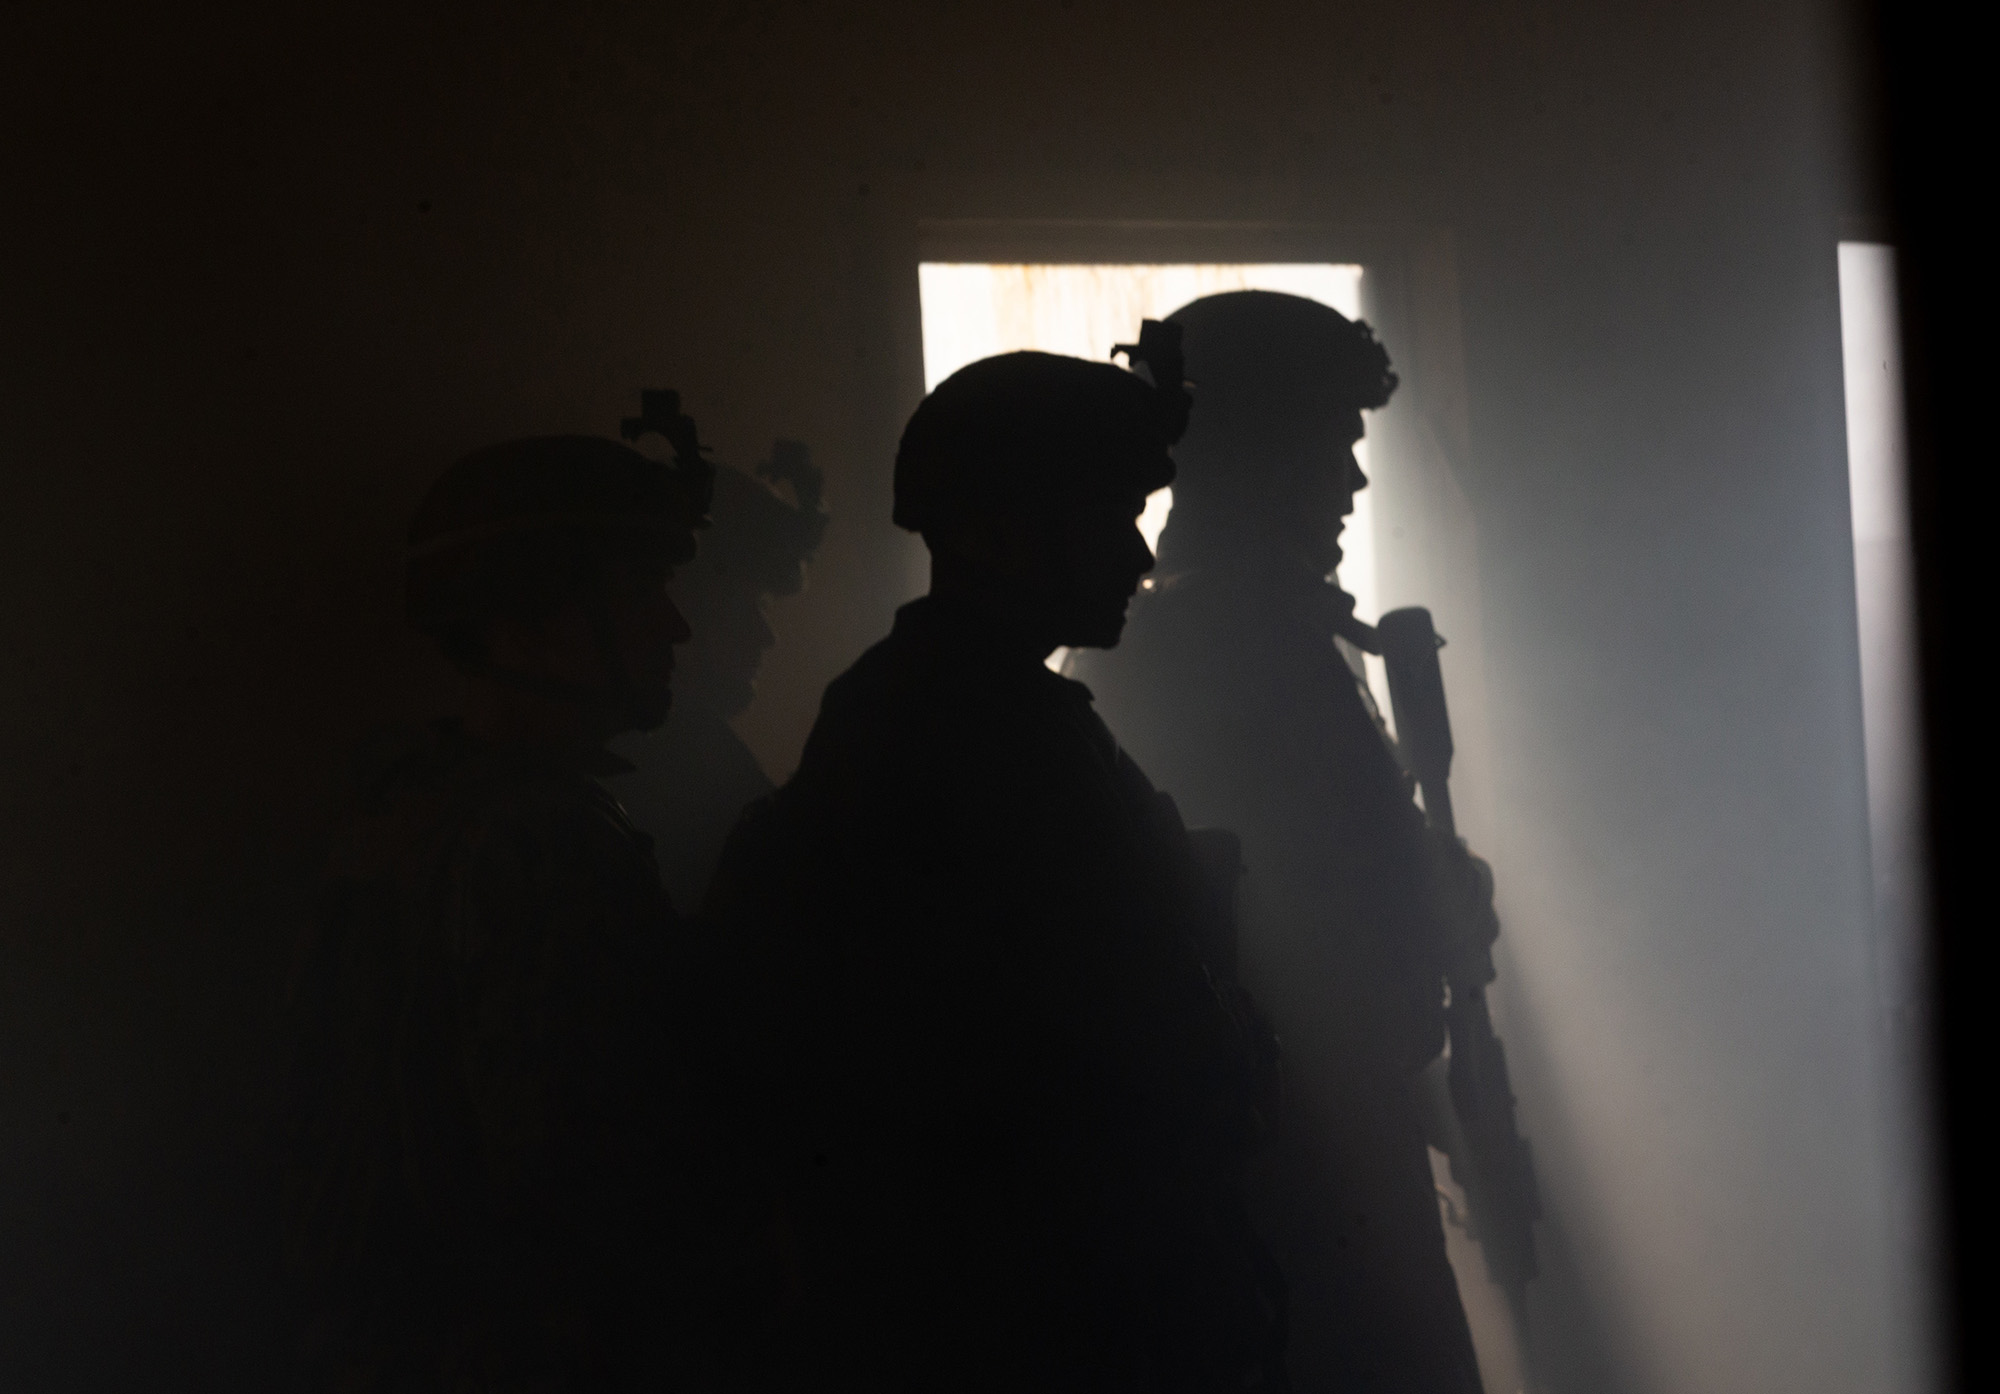 U.S. Marines with 3rd Battalion, 6th Marine Regiment (3/6), 2d Marine Division pass word in a cleared building during Exercise Deep Water on Camp Lejeune, N.C., Aug. 1, 2020. (Lance Cpl. Jacqueline Parsons/Marine Corps)